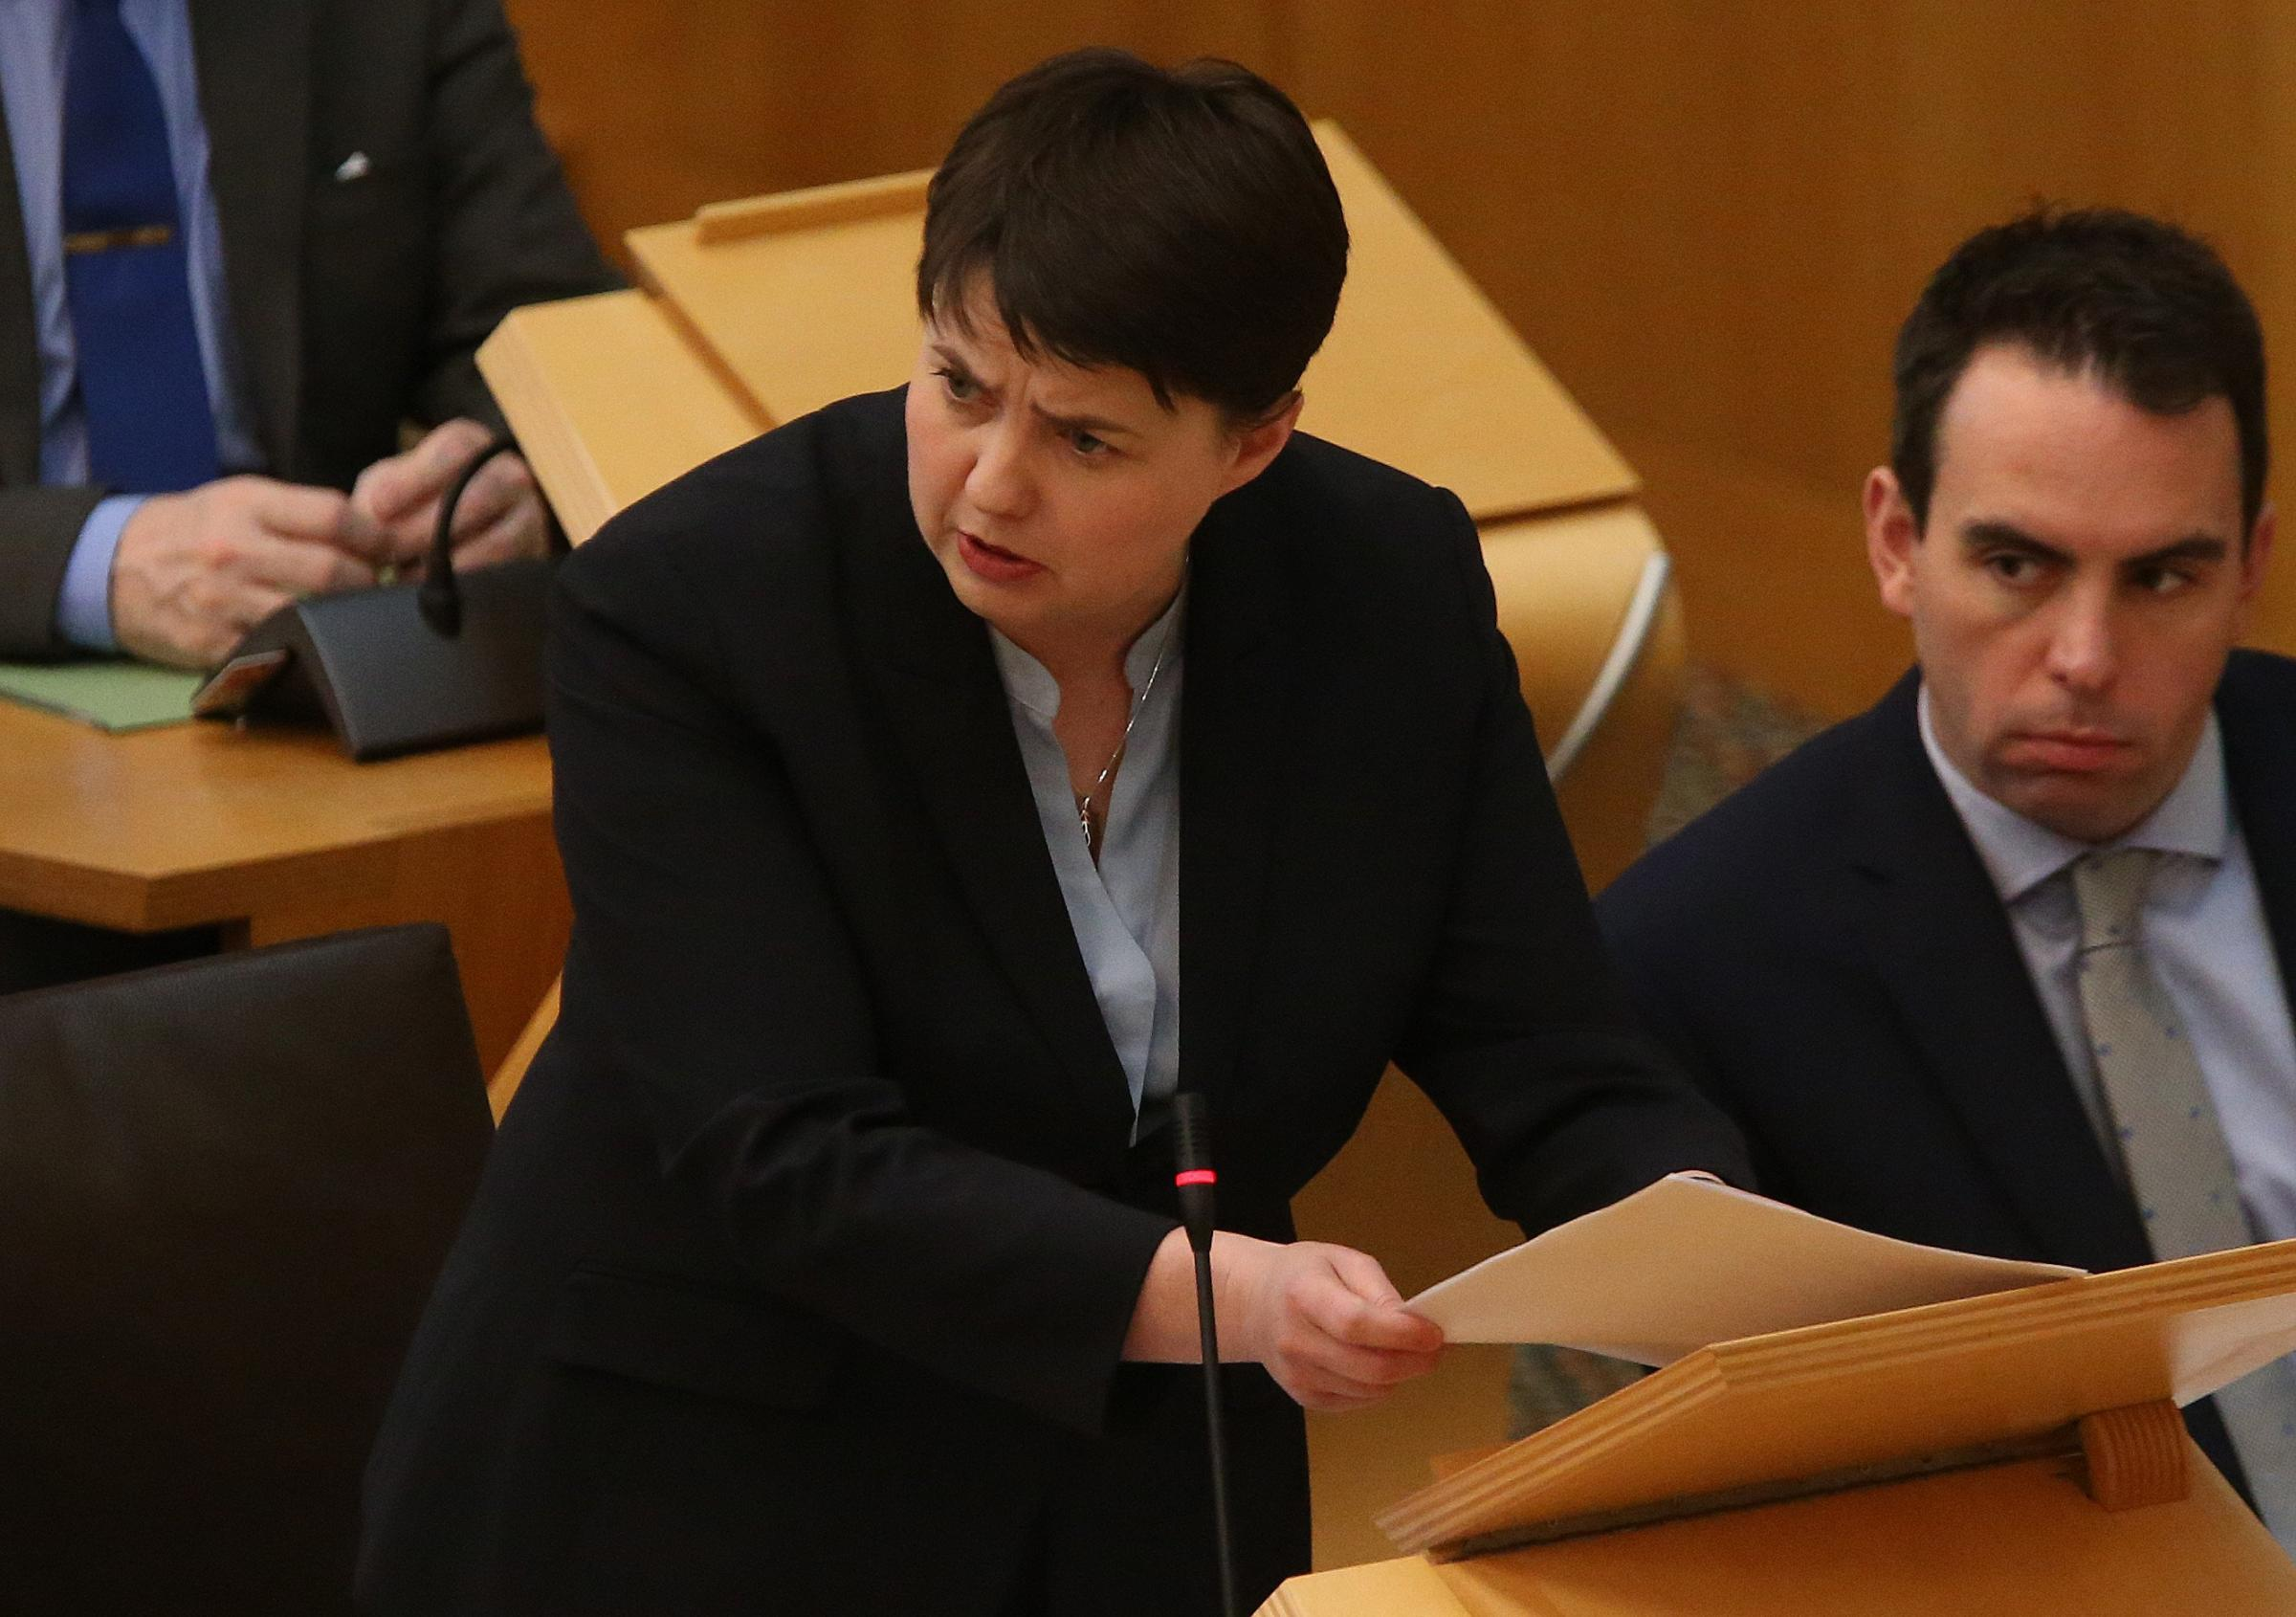 Has the time come for new kind of Scottish Conservative party?